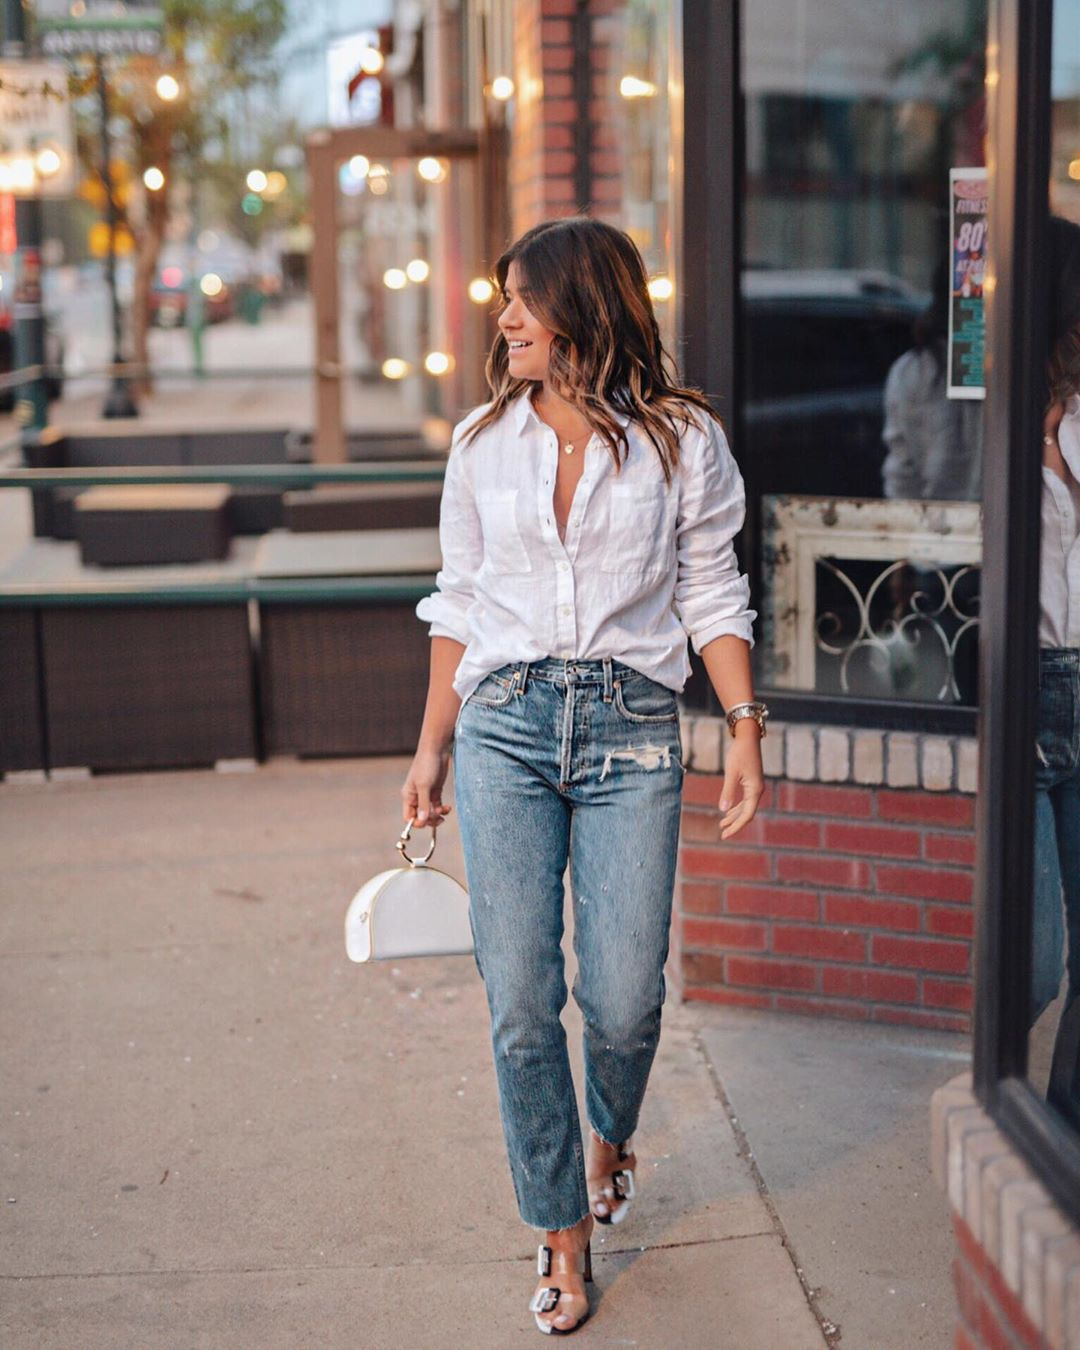 jeans high waisted jeans straight jeans sandals white shirt handbag